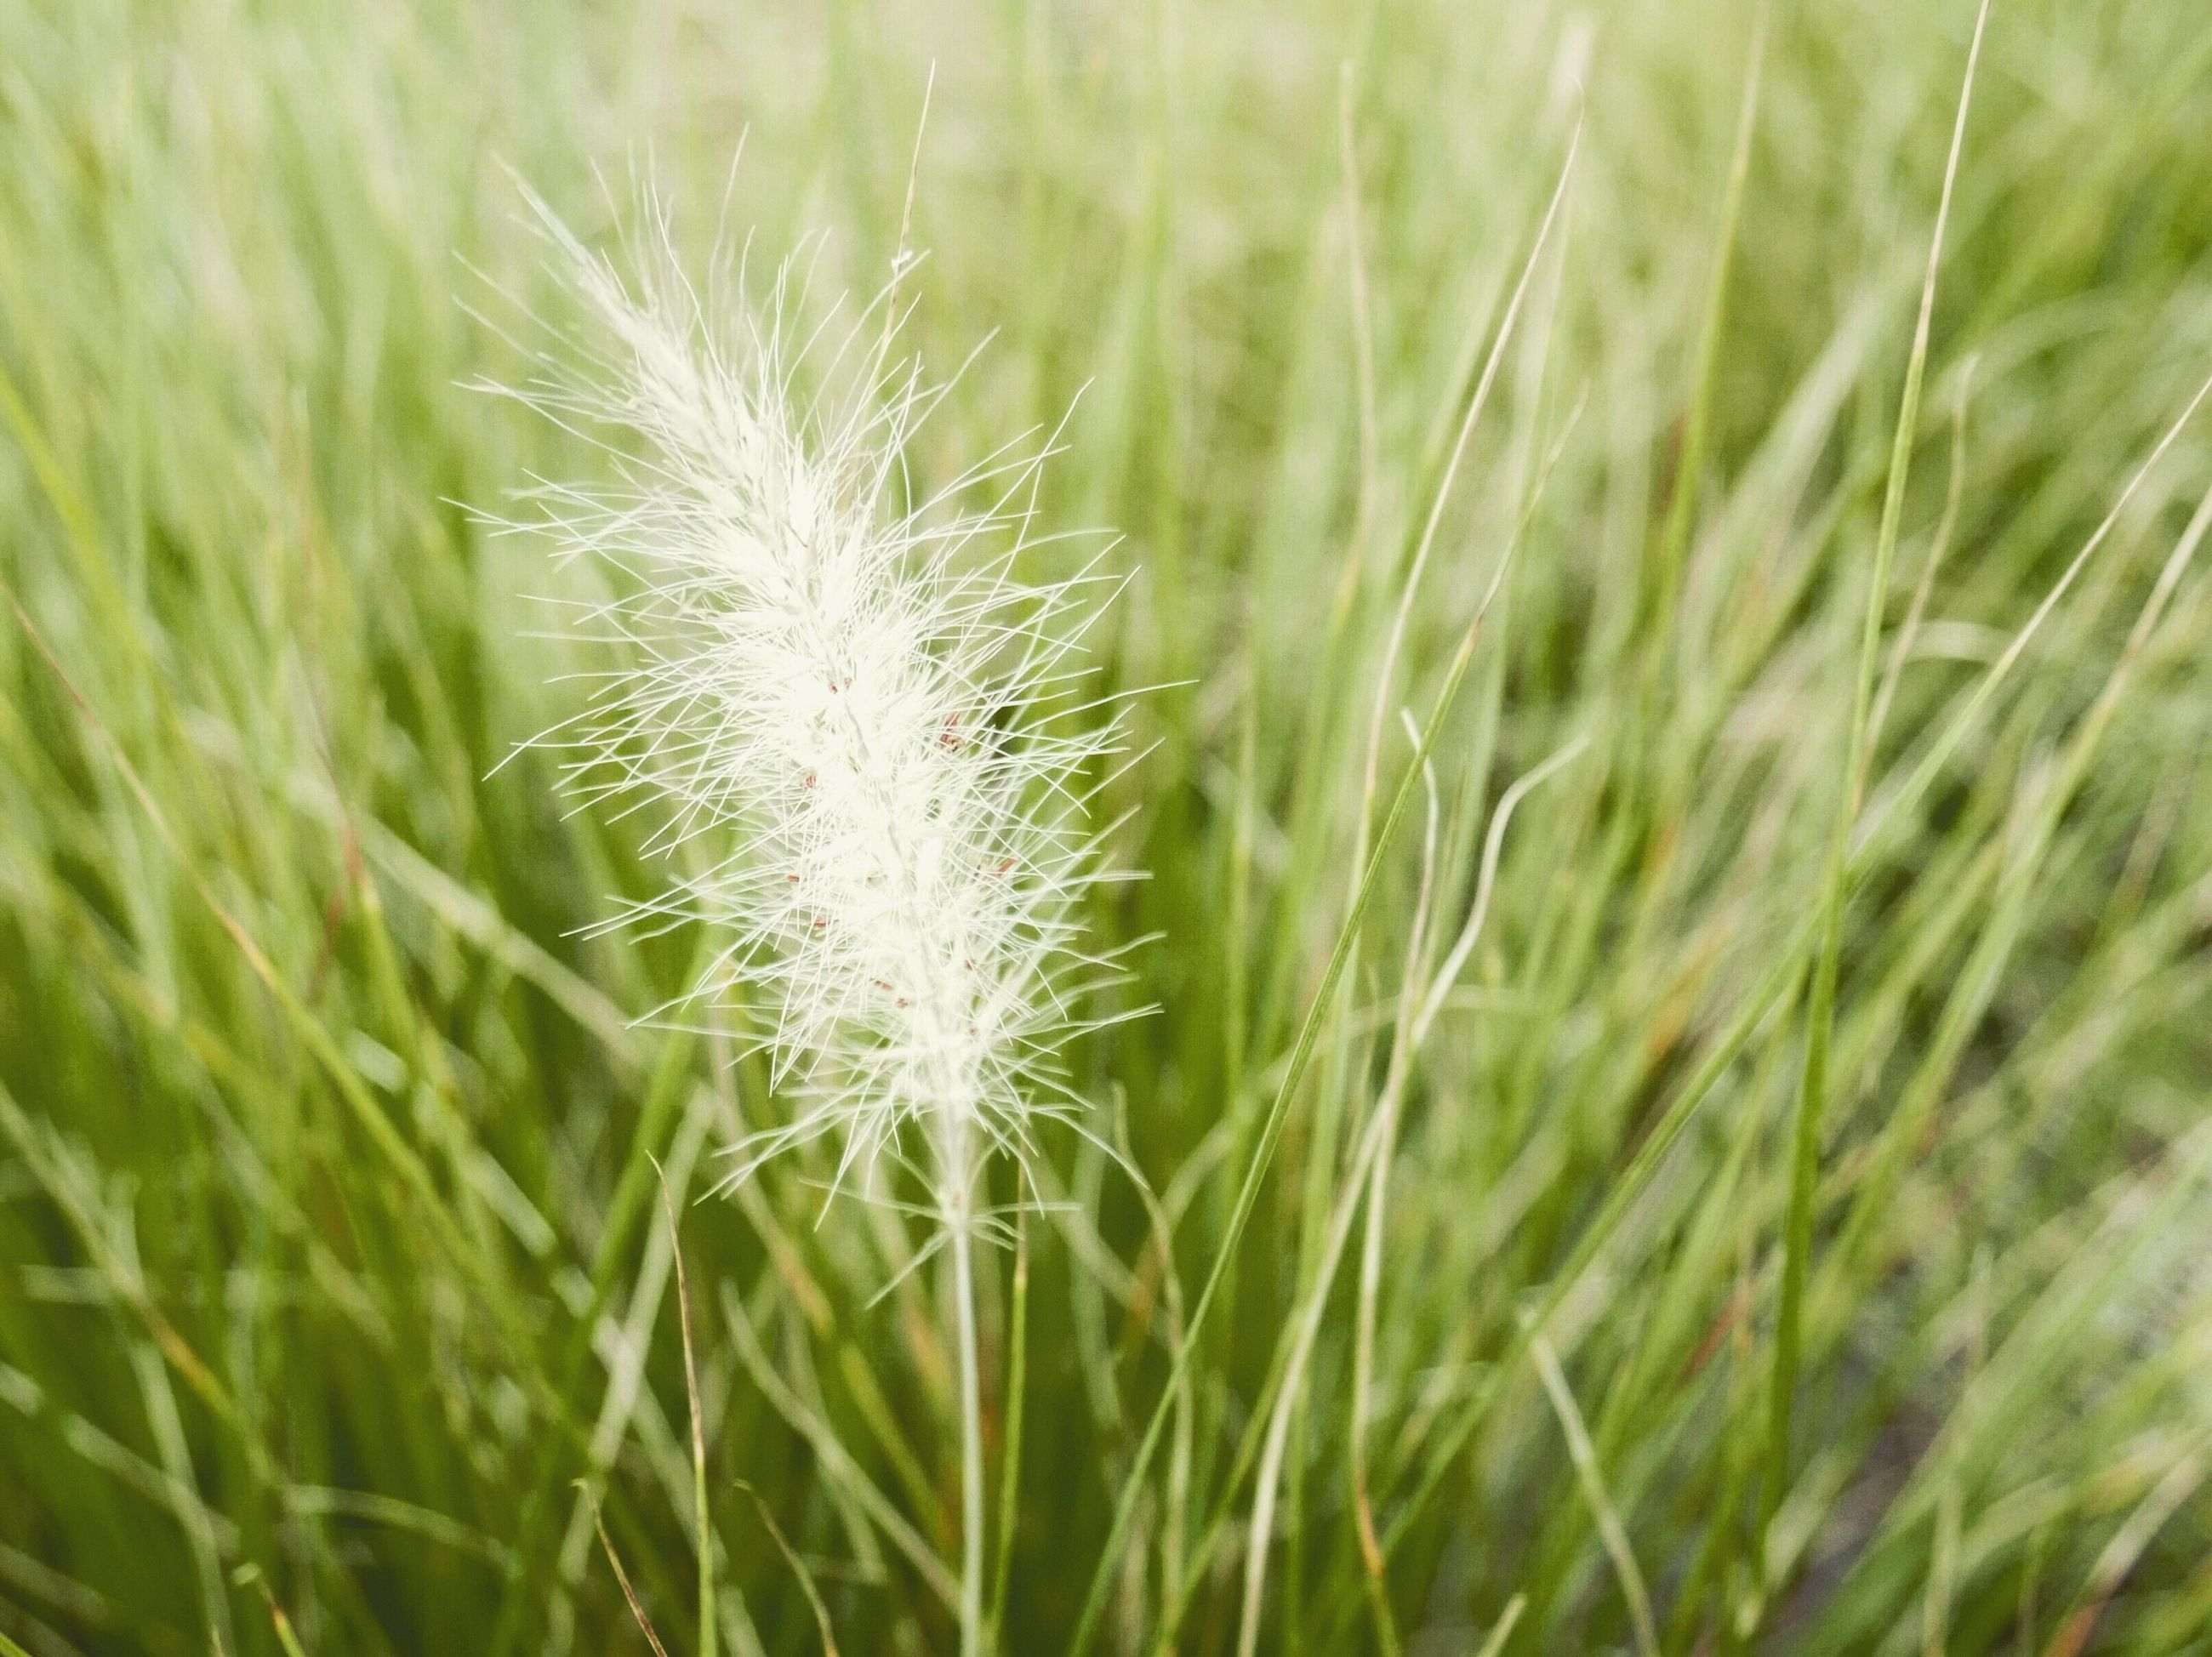 grass, growth, dandelion, plant, fragility, close-up, flower, freshness, field, focus on foreground, nature, green color, beauty in nature, selective focus, softness, day, single flower, grassy, uncultivated, botany, blade of grass, flower head, outdoors, tranquility, dandelion seed, grass family, in bloom, growing